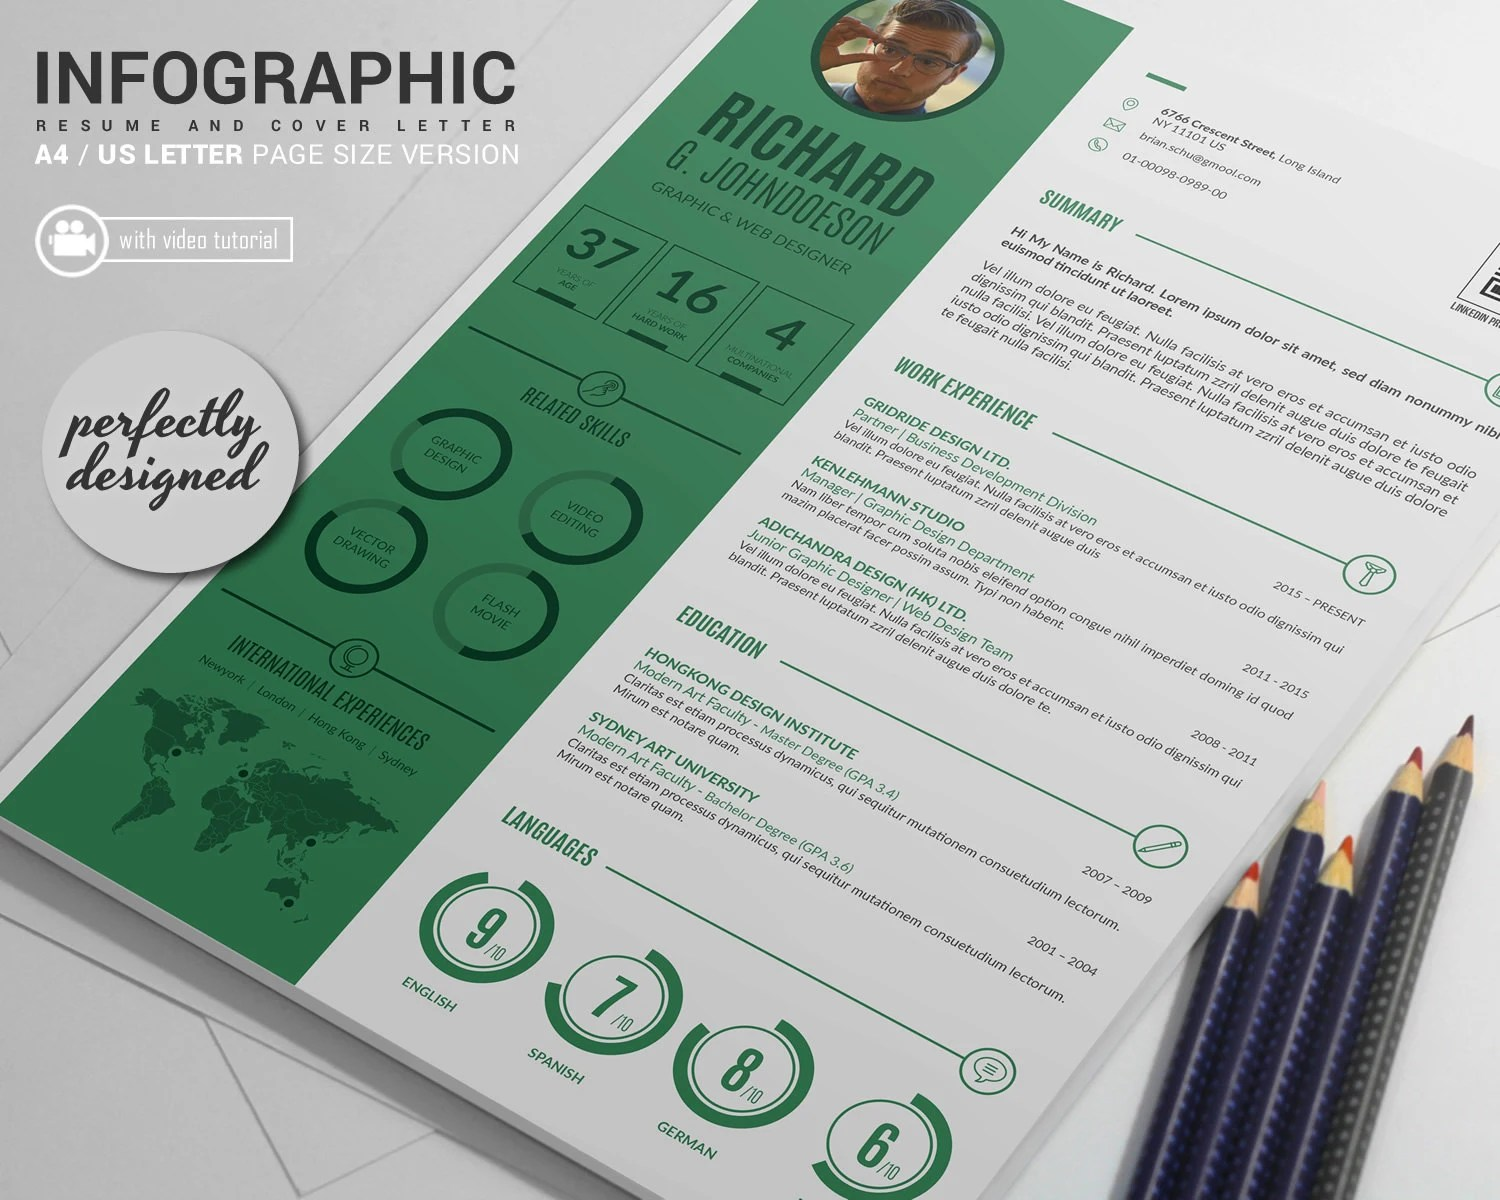 gridride - Professional Resume Template and Cover Letter, Word and